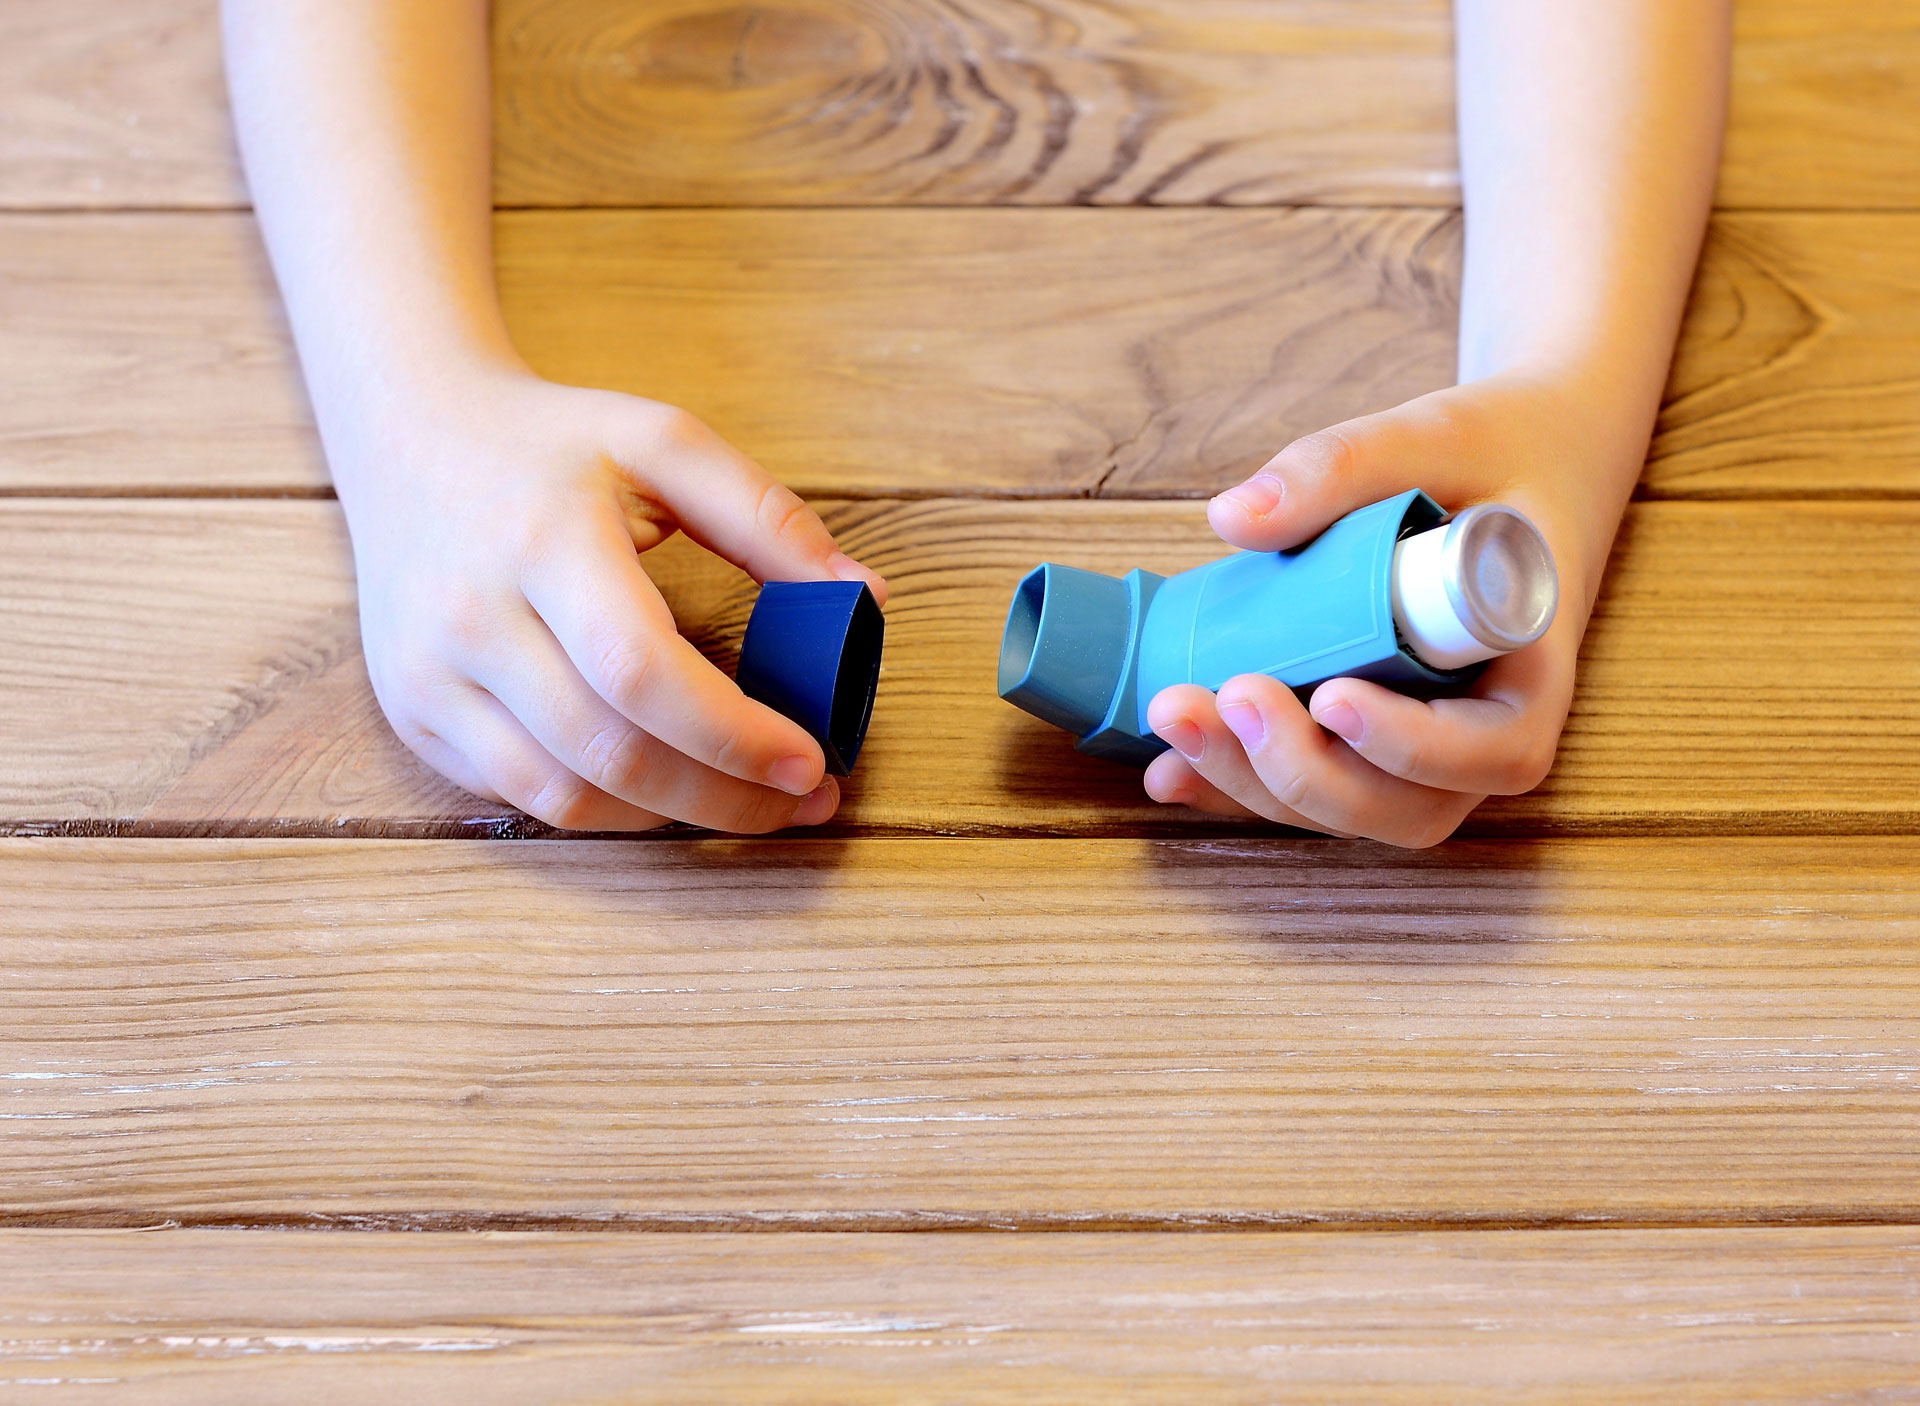 This app uses AI and big data to tell you if your child has asthma